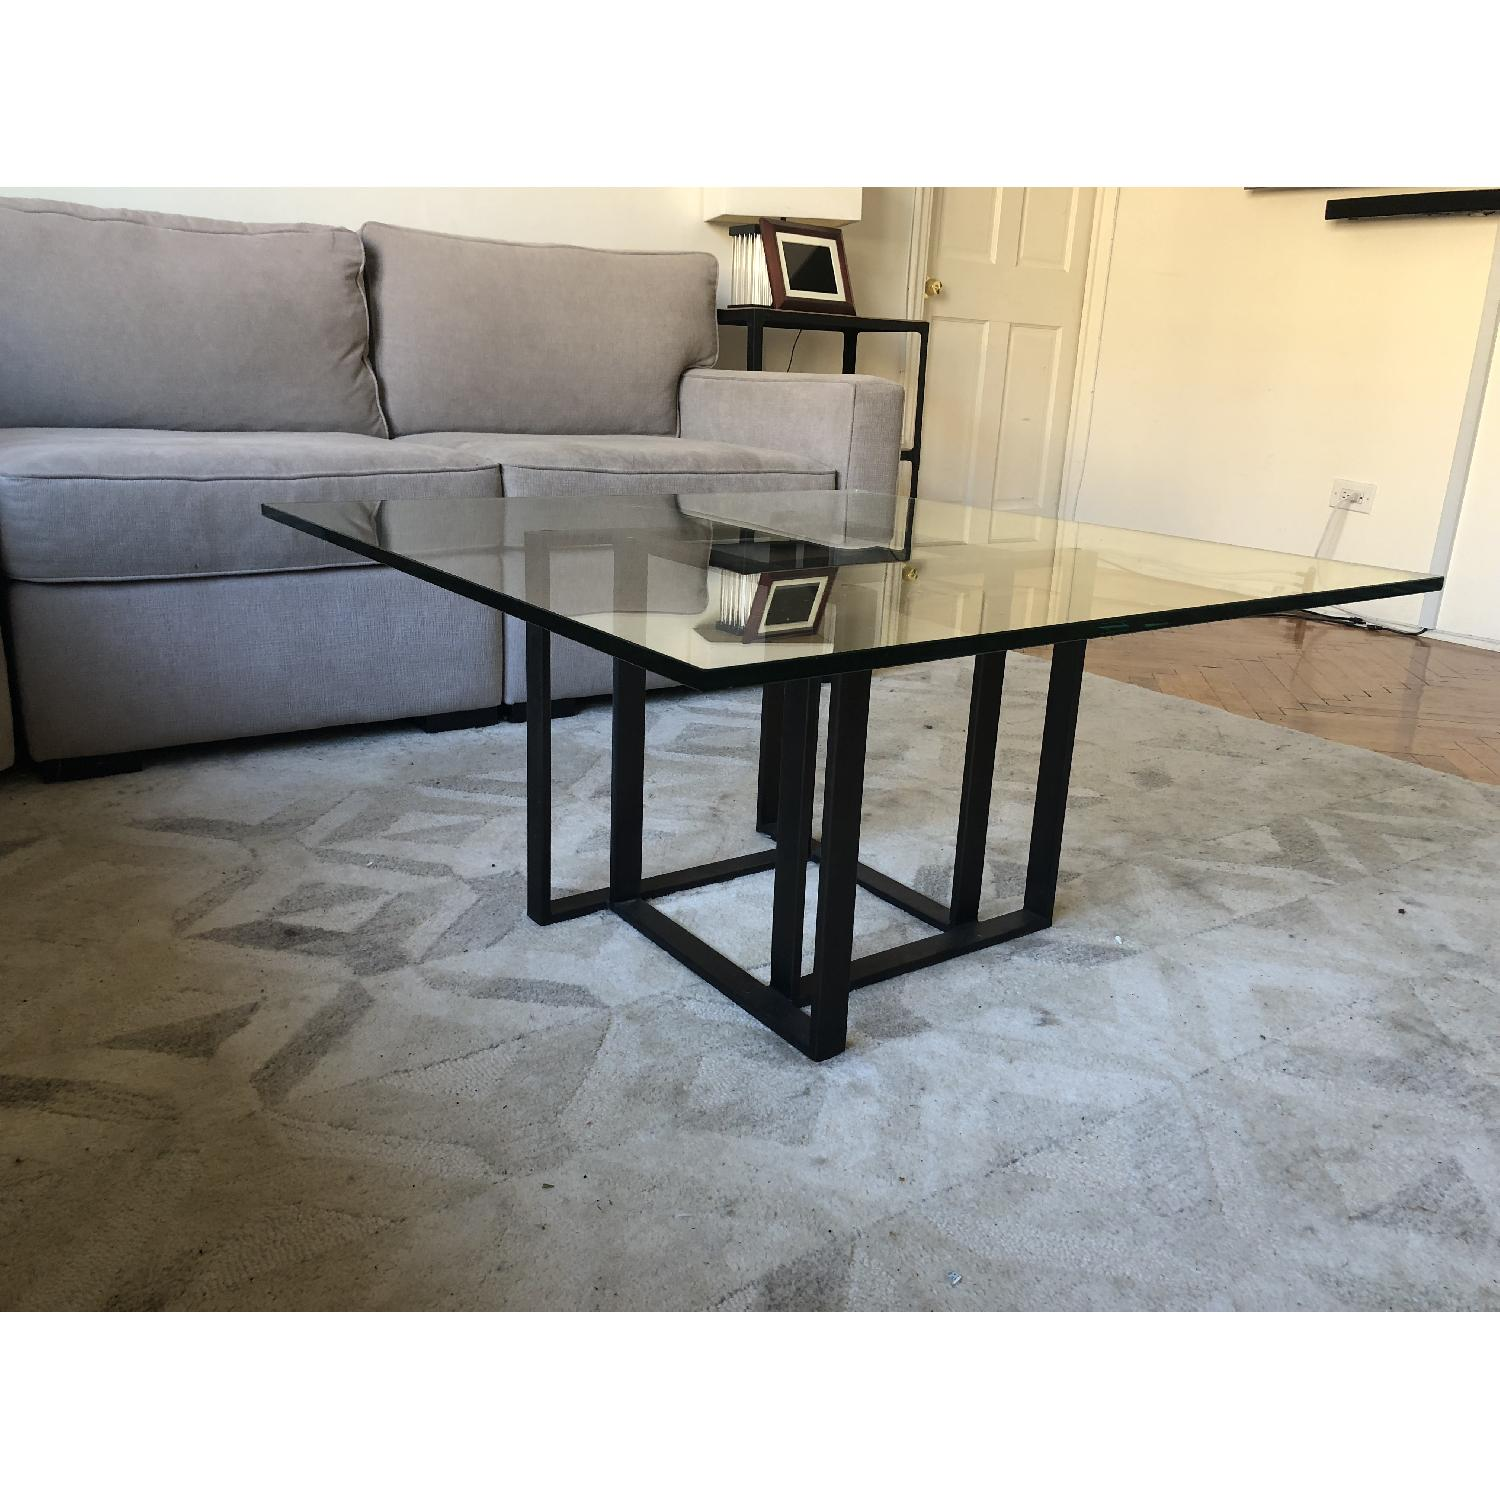 Crate & Barrel Glass Coffee Table-2